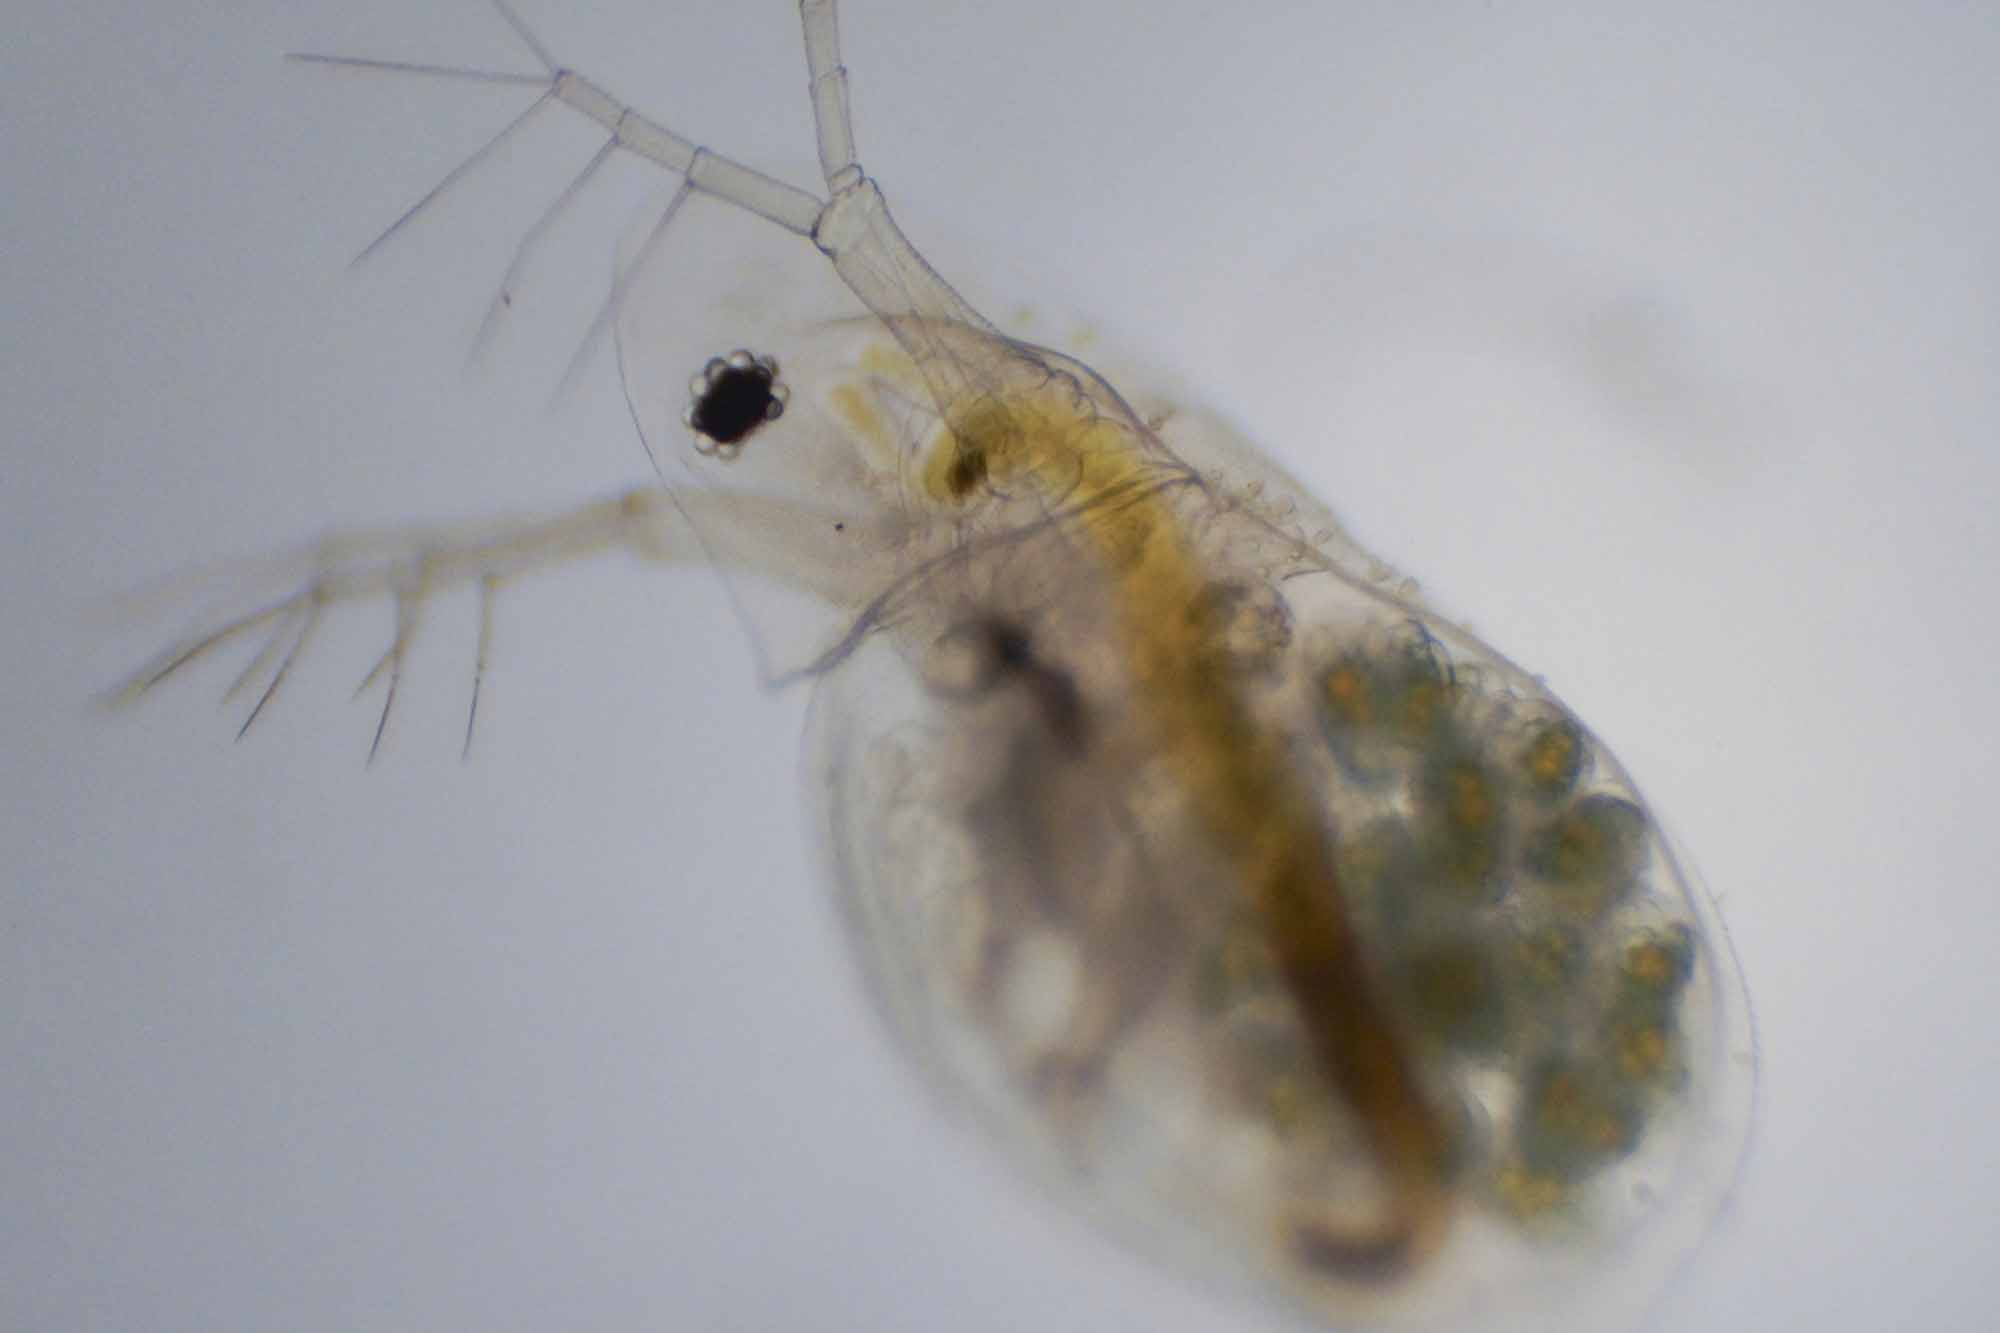 Water Flea, or Daphnia